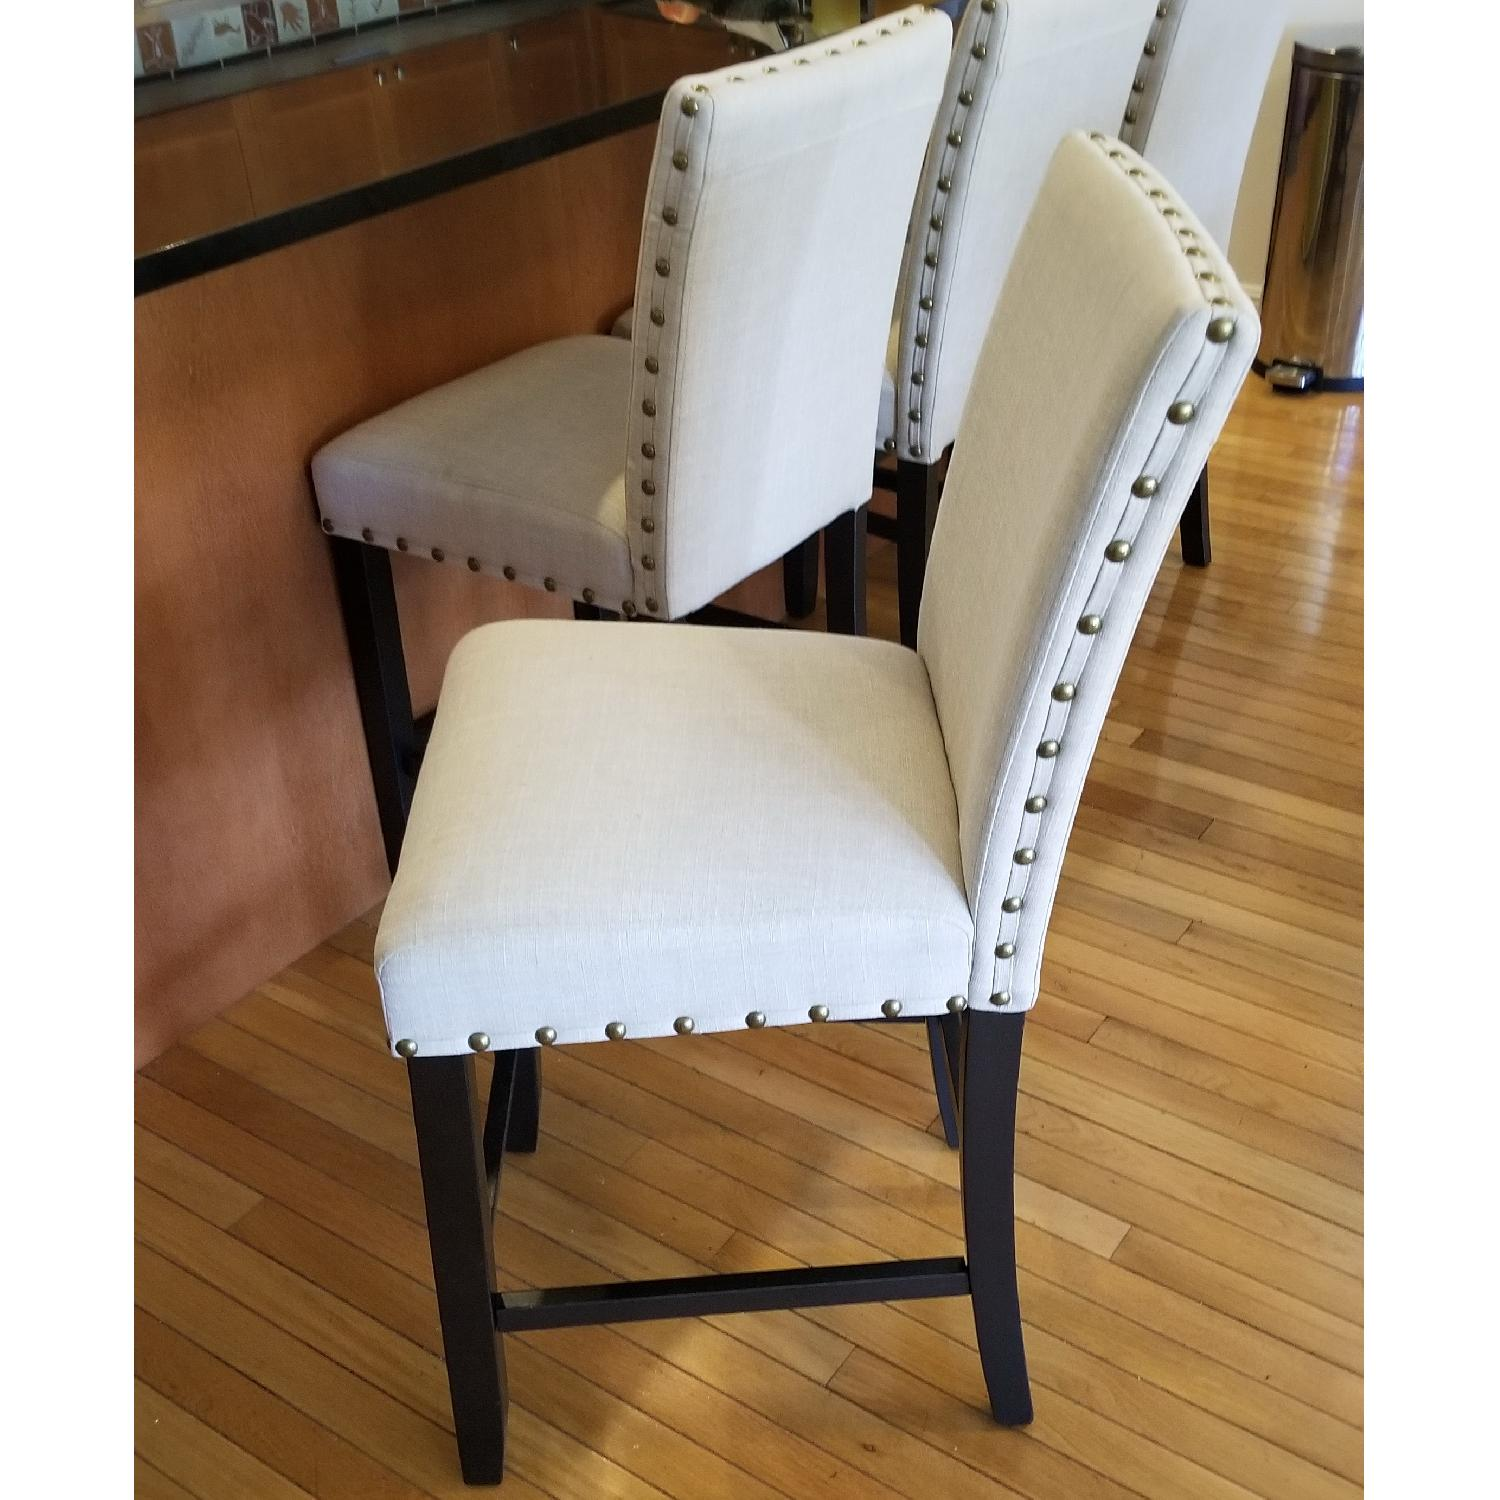 Upholstered Counter Height Stools - image-3